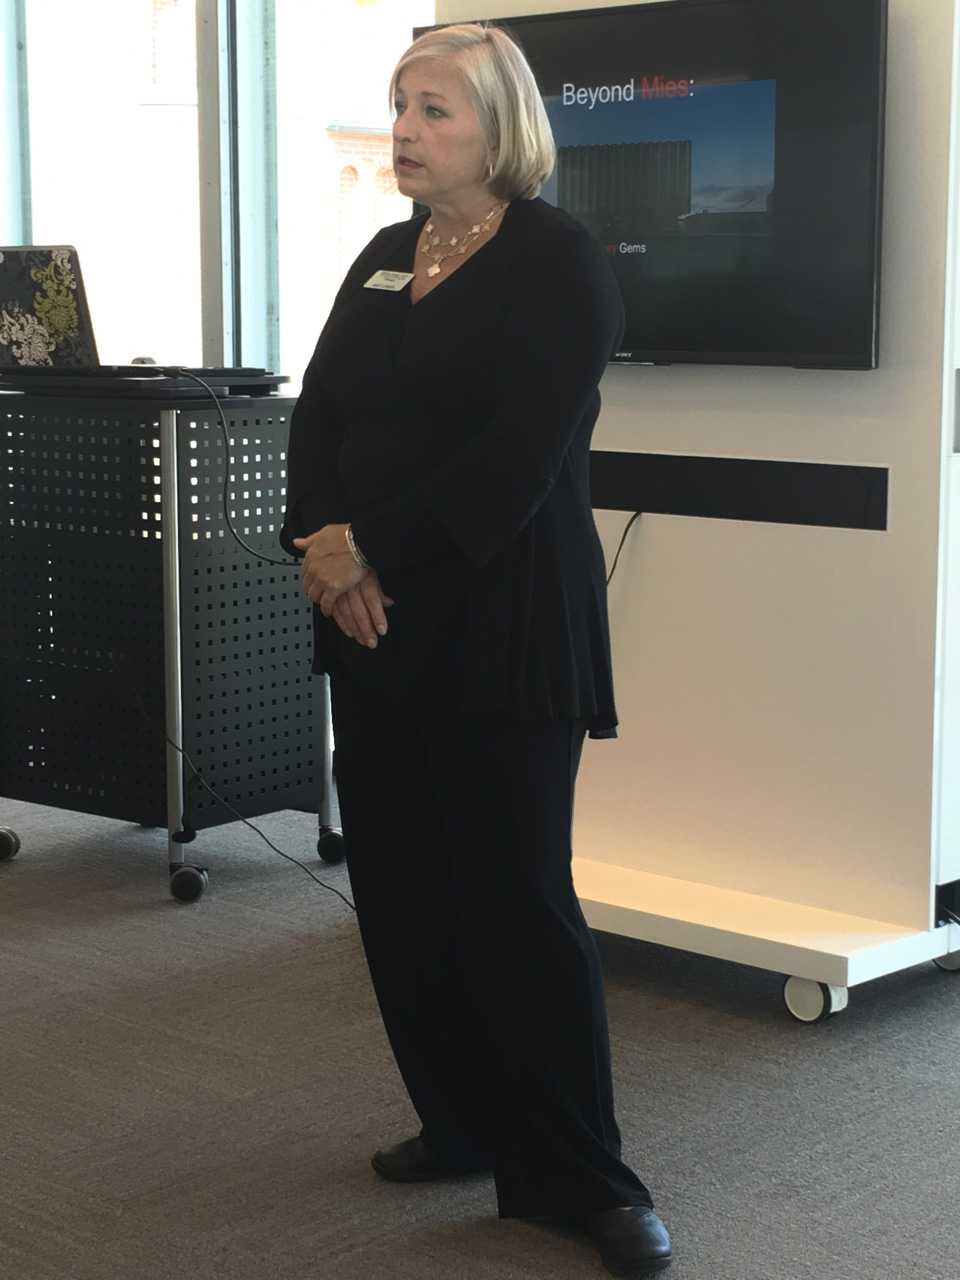 Bank president Amy Lemar talks about the bank and the renovation process